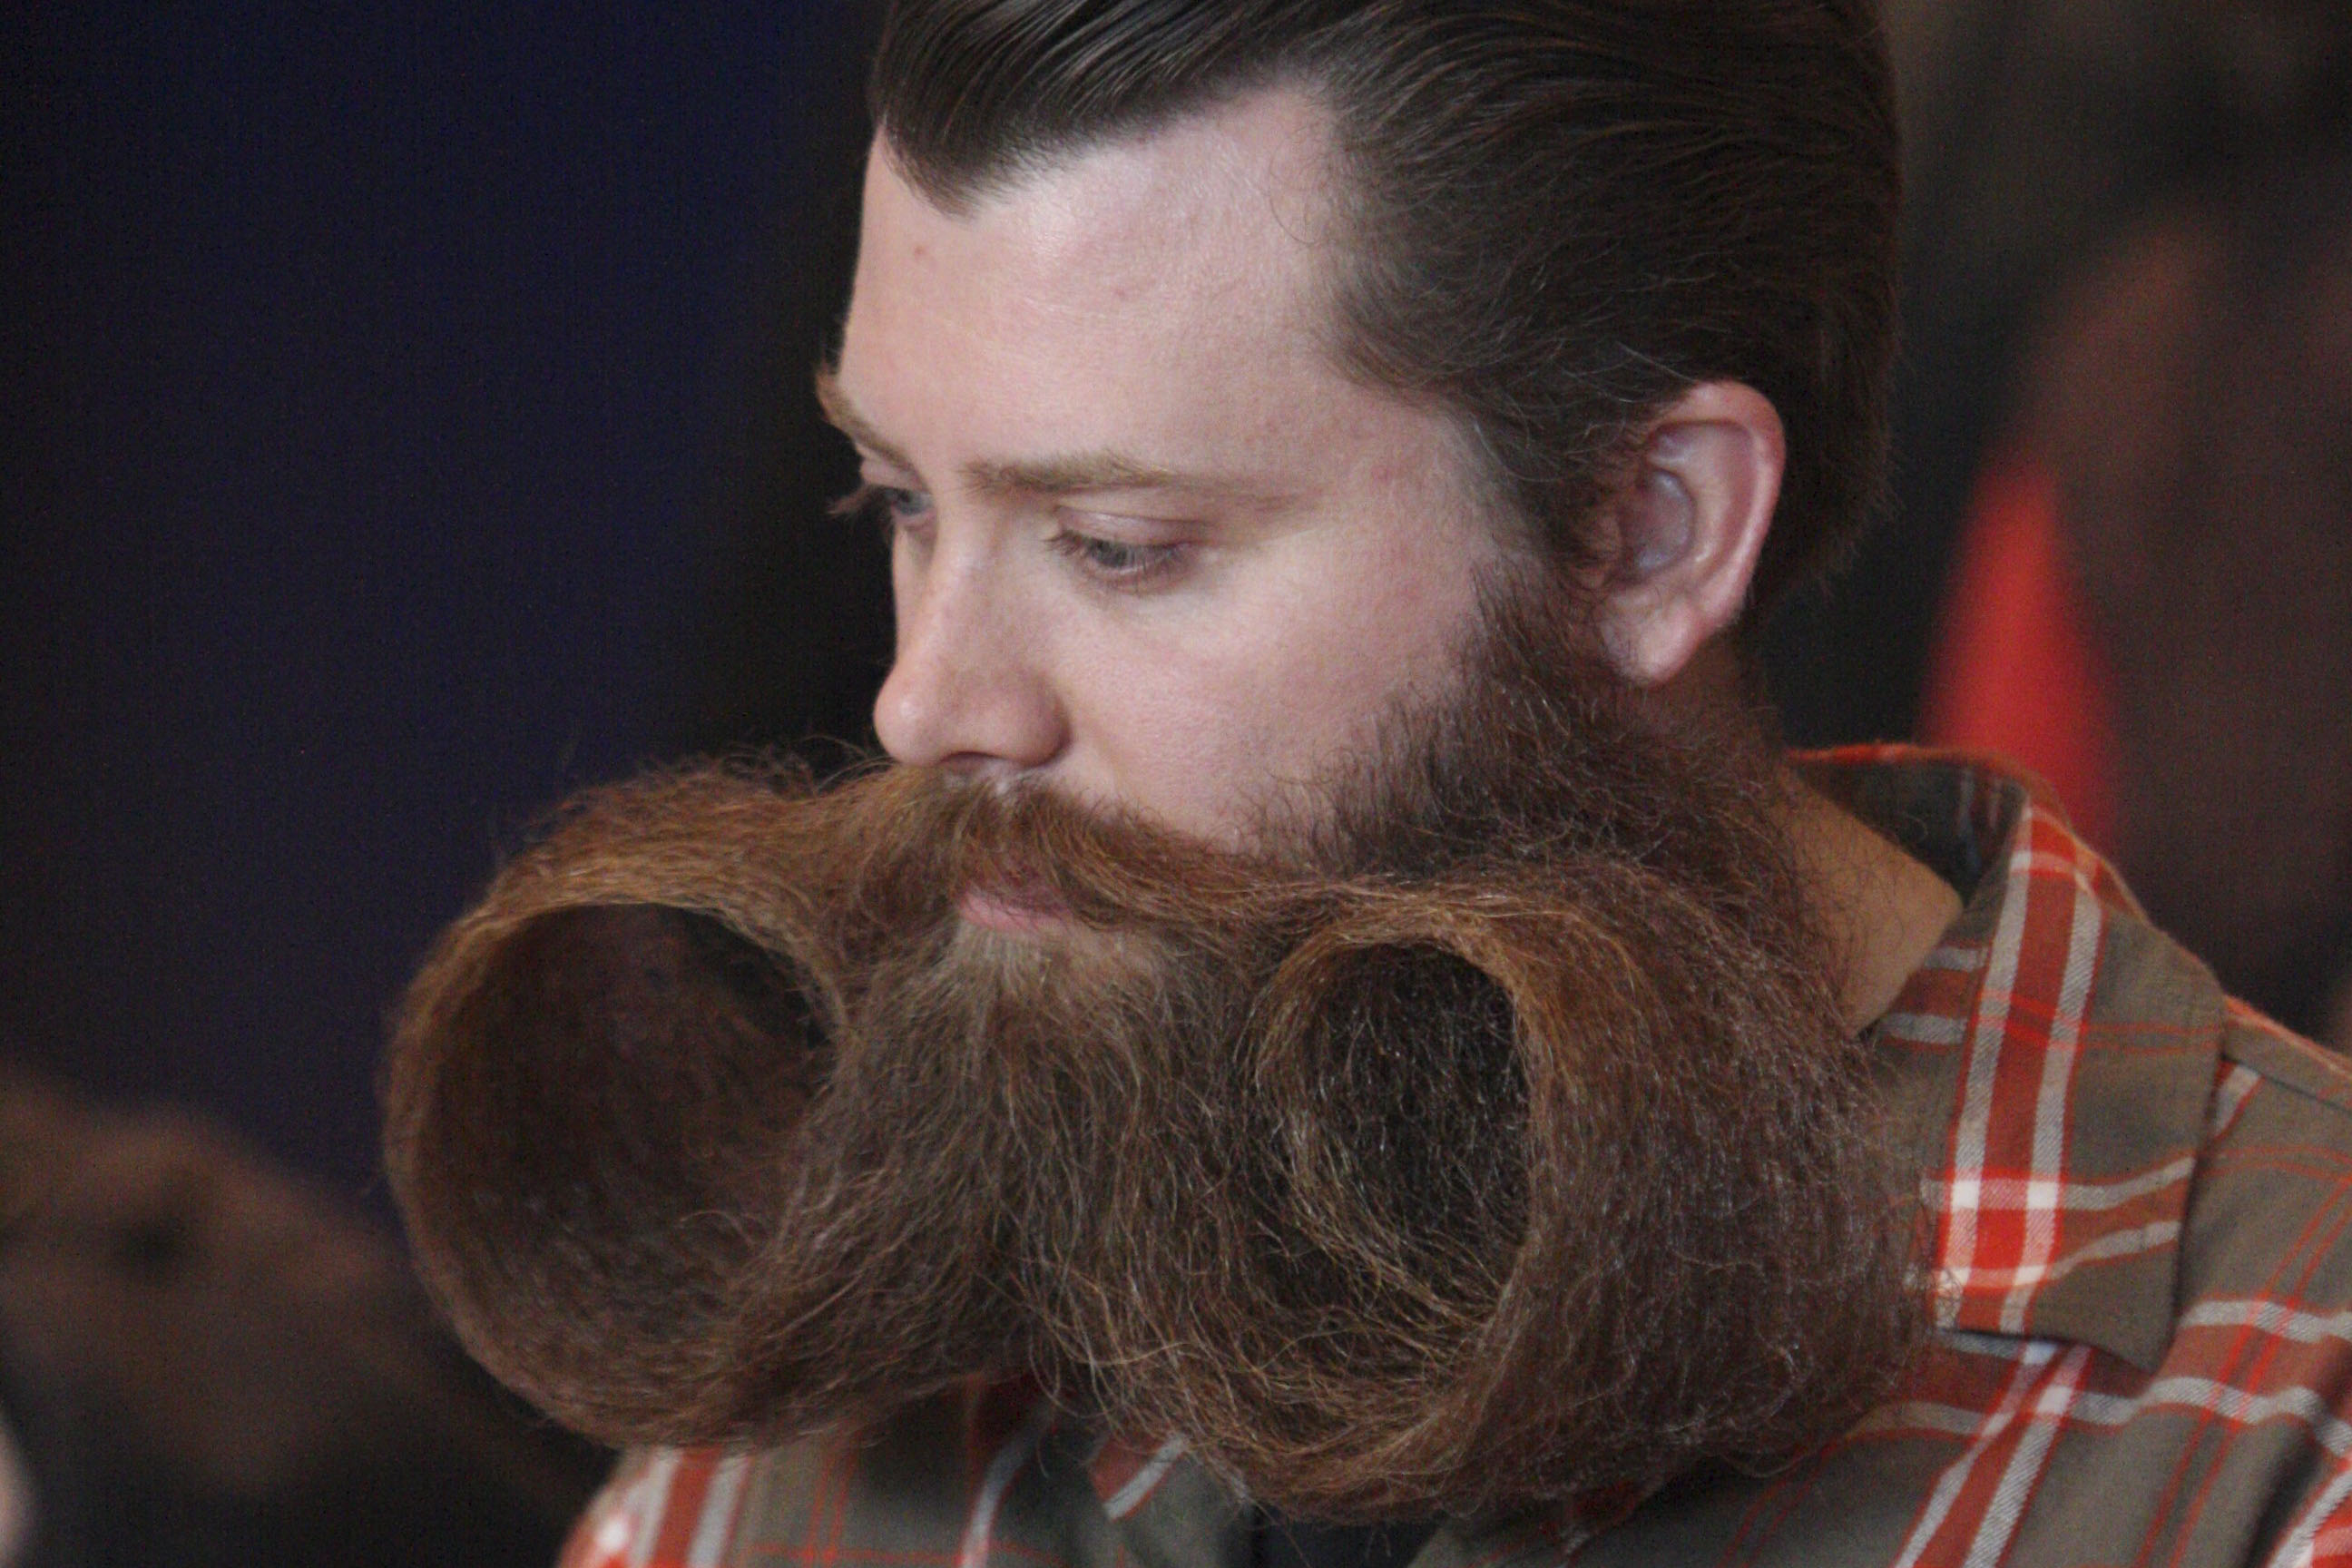 Hair Style With Beard: The Mariners' Museum And Park